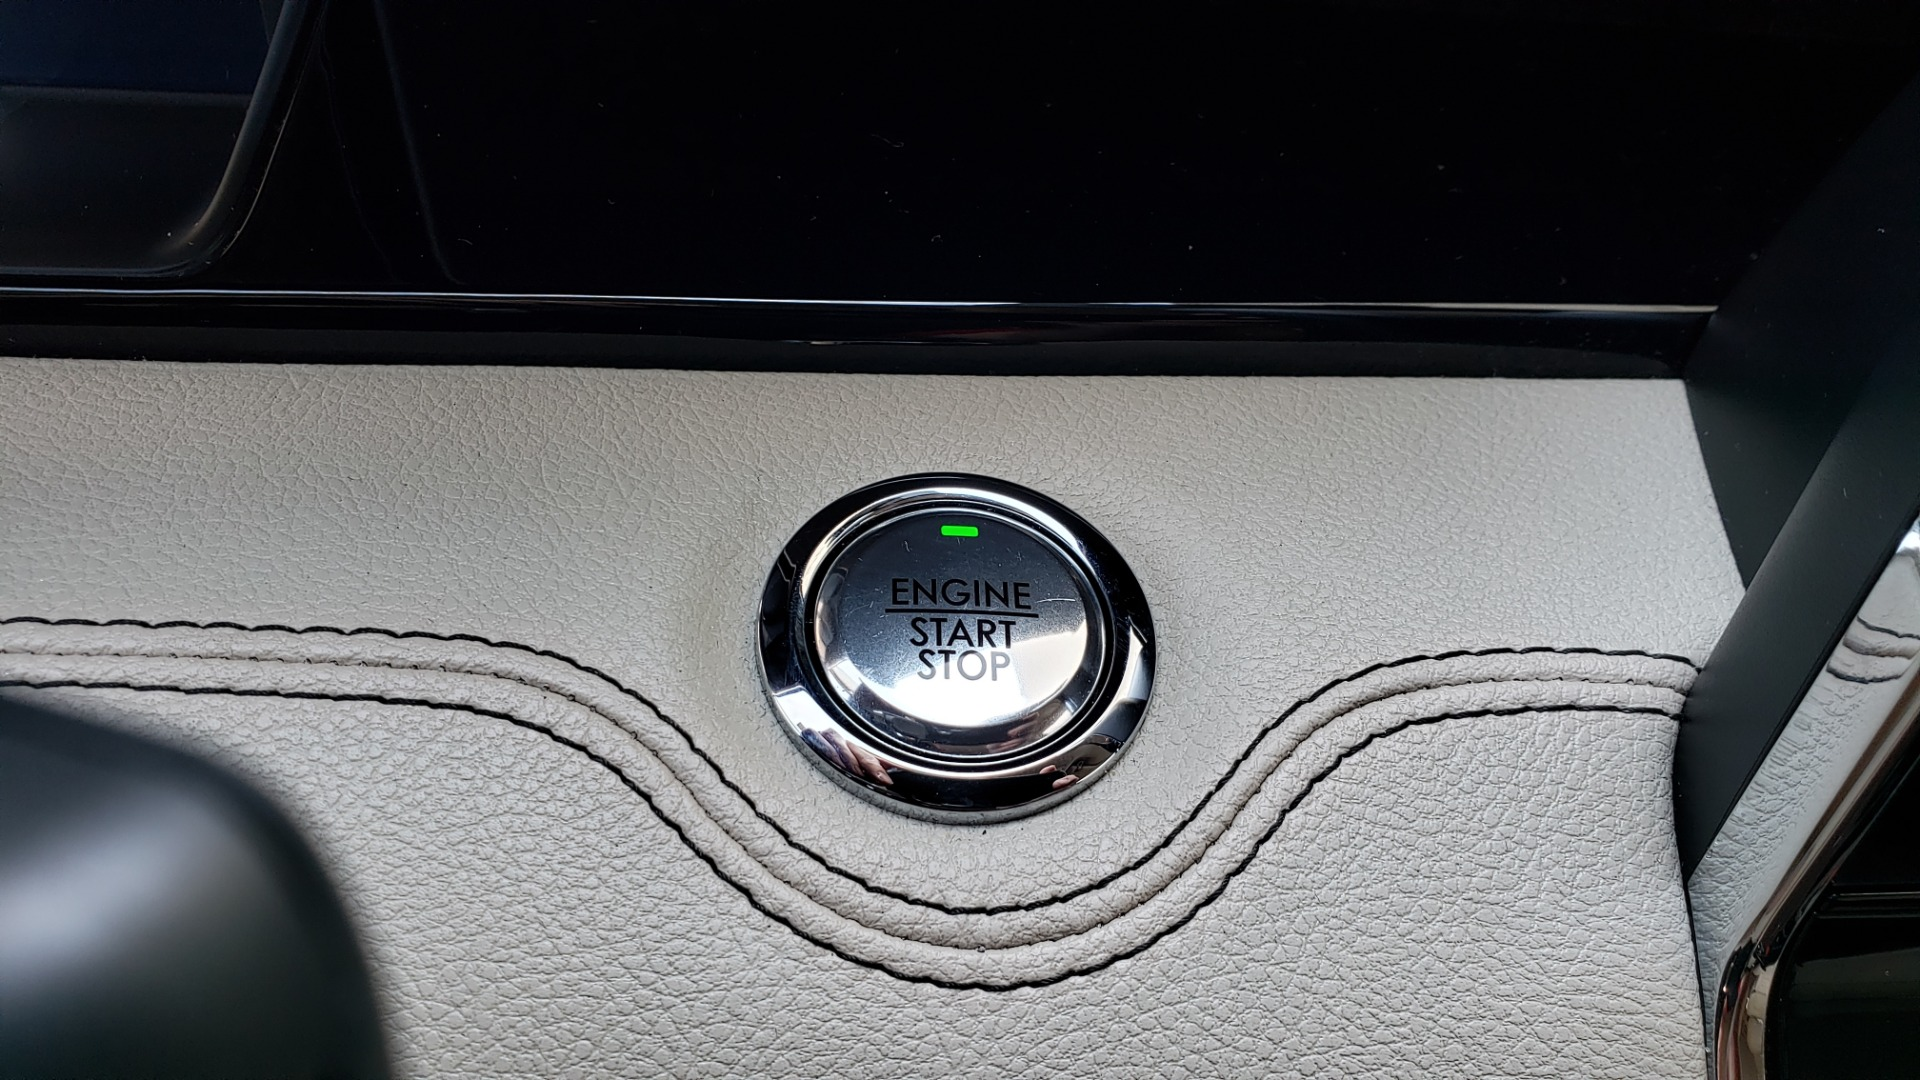 Used 2018 Lincoln NAVIGATOR PREMIERE 4X2 / TWIN-TURBO V6 / NAV / 3-ROW / REARVIEW for sale Sold at Formula Imports in Charlotte NC 28227 51